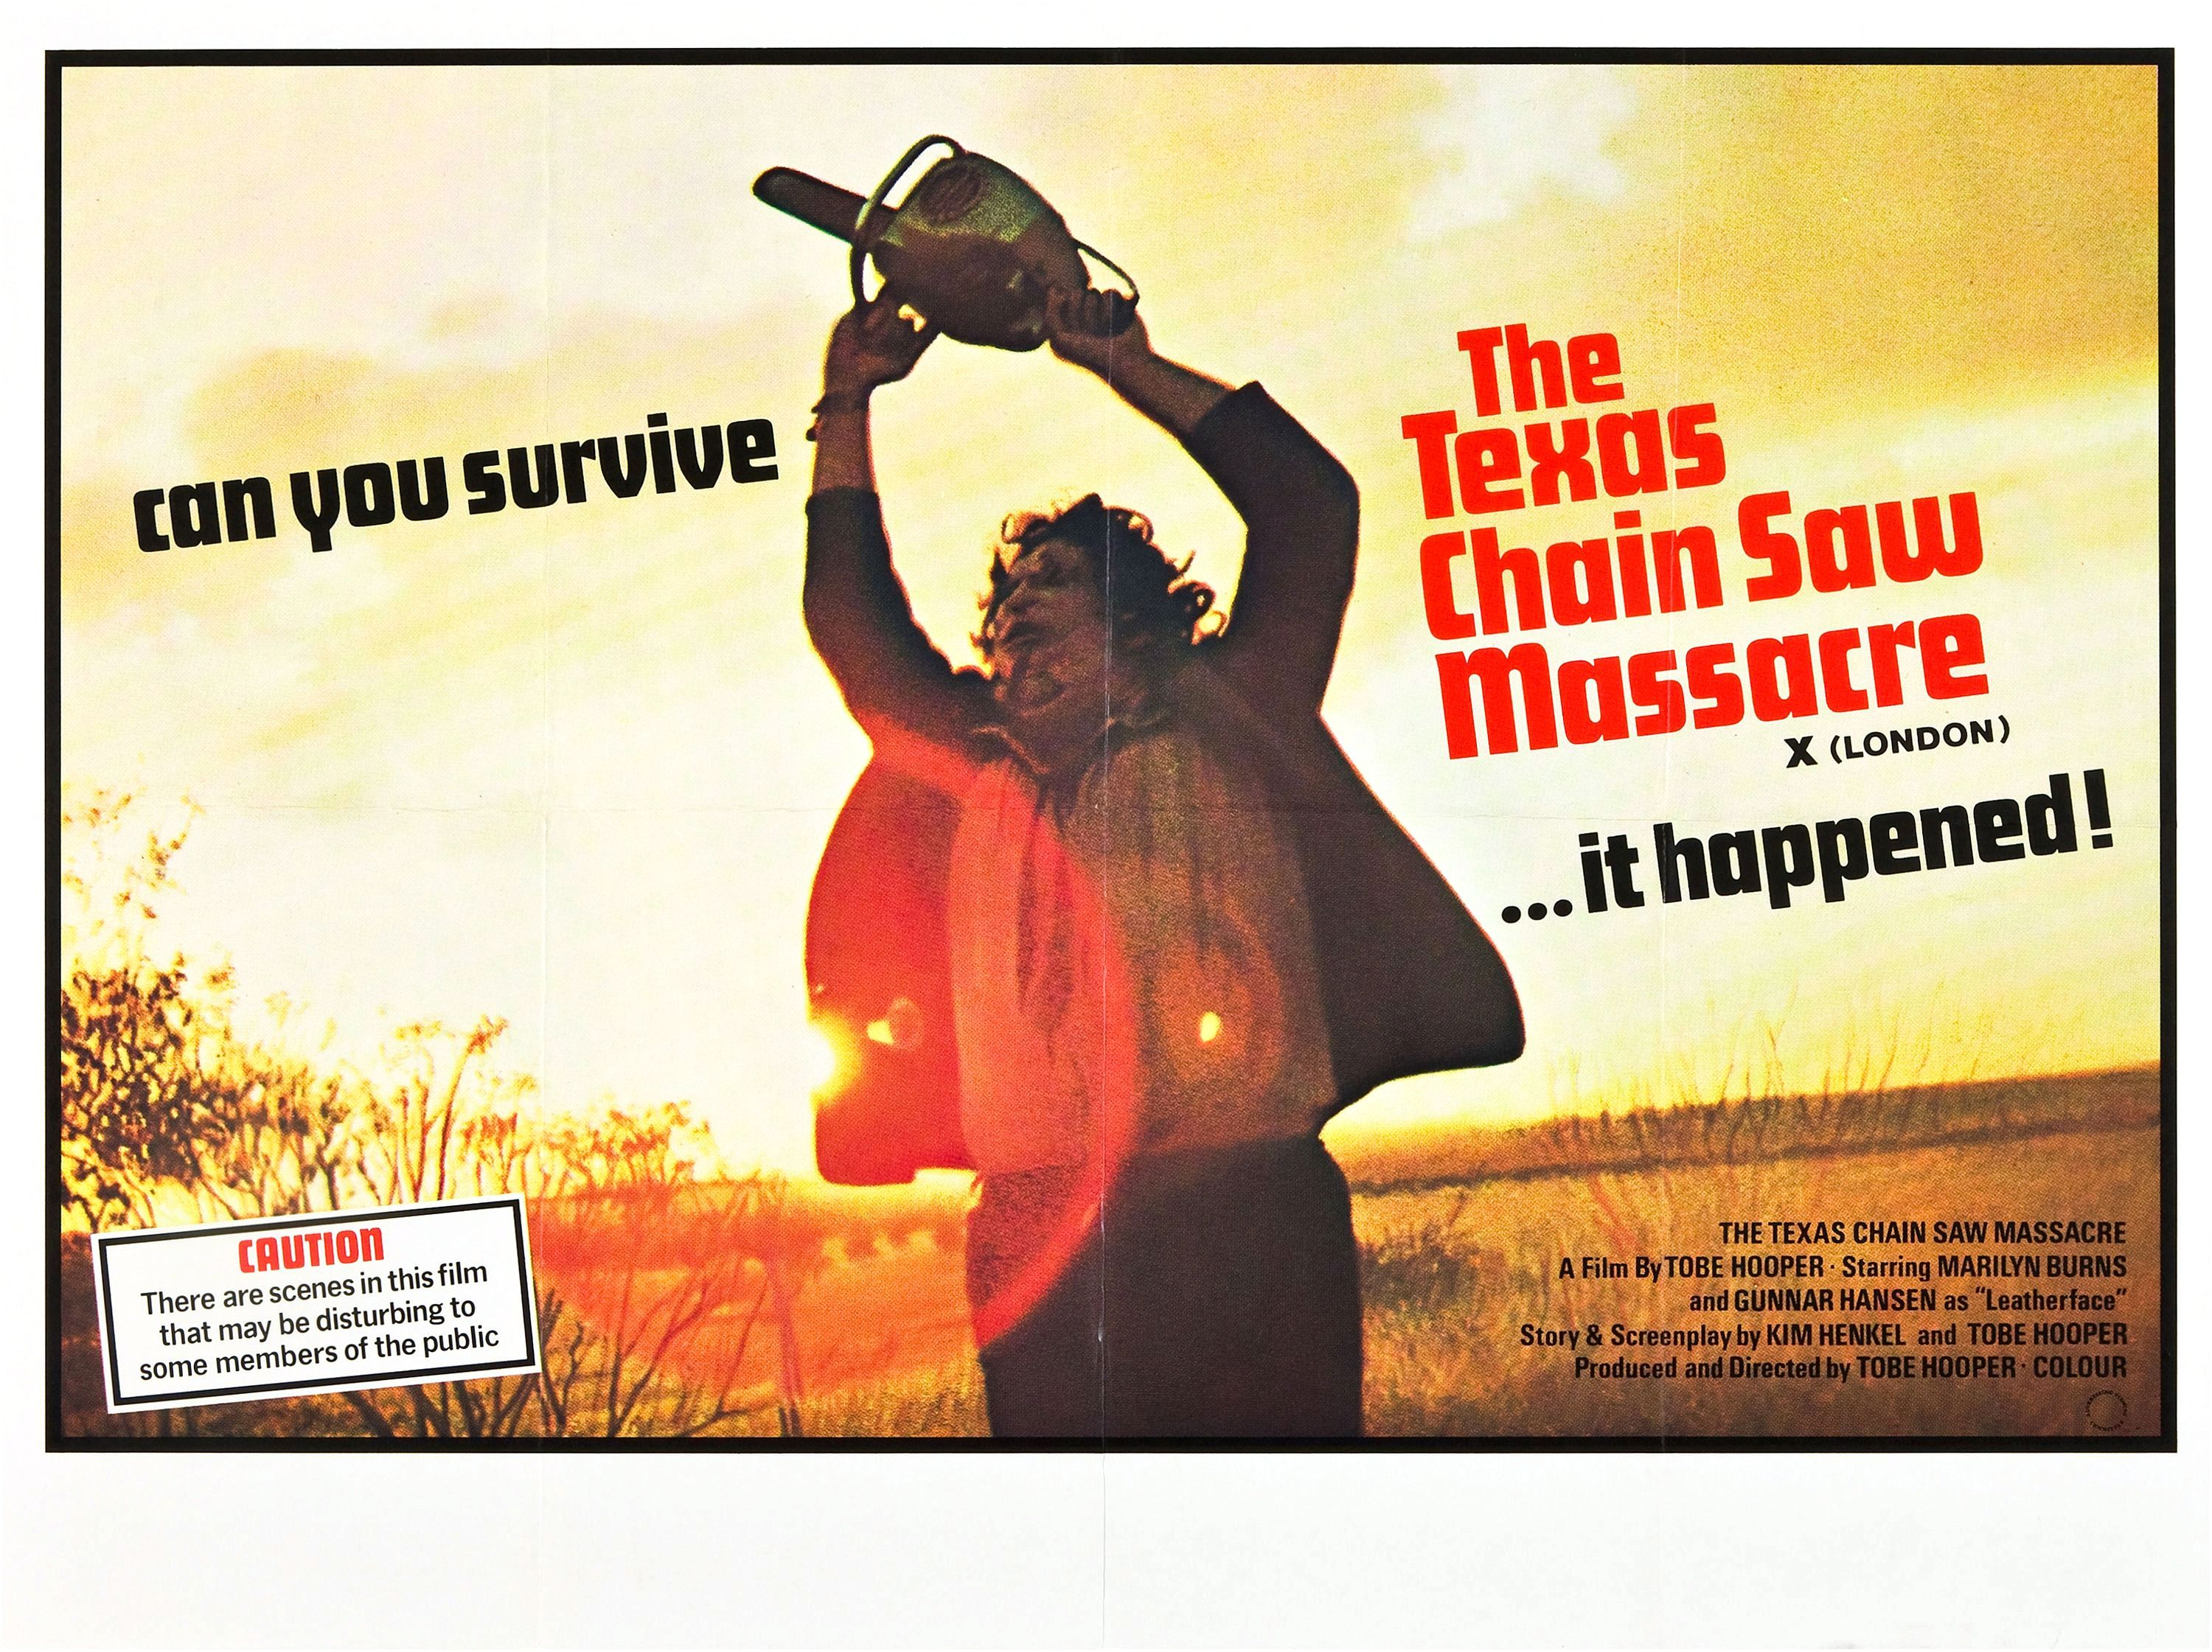 http://vignette3.wikia.nocookie.net/texaschainsawmassacre/images/f/f1/Texas_chainsaw_massacre_1_poster_british.jpg/revision/latest?cb=20140301151606